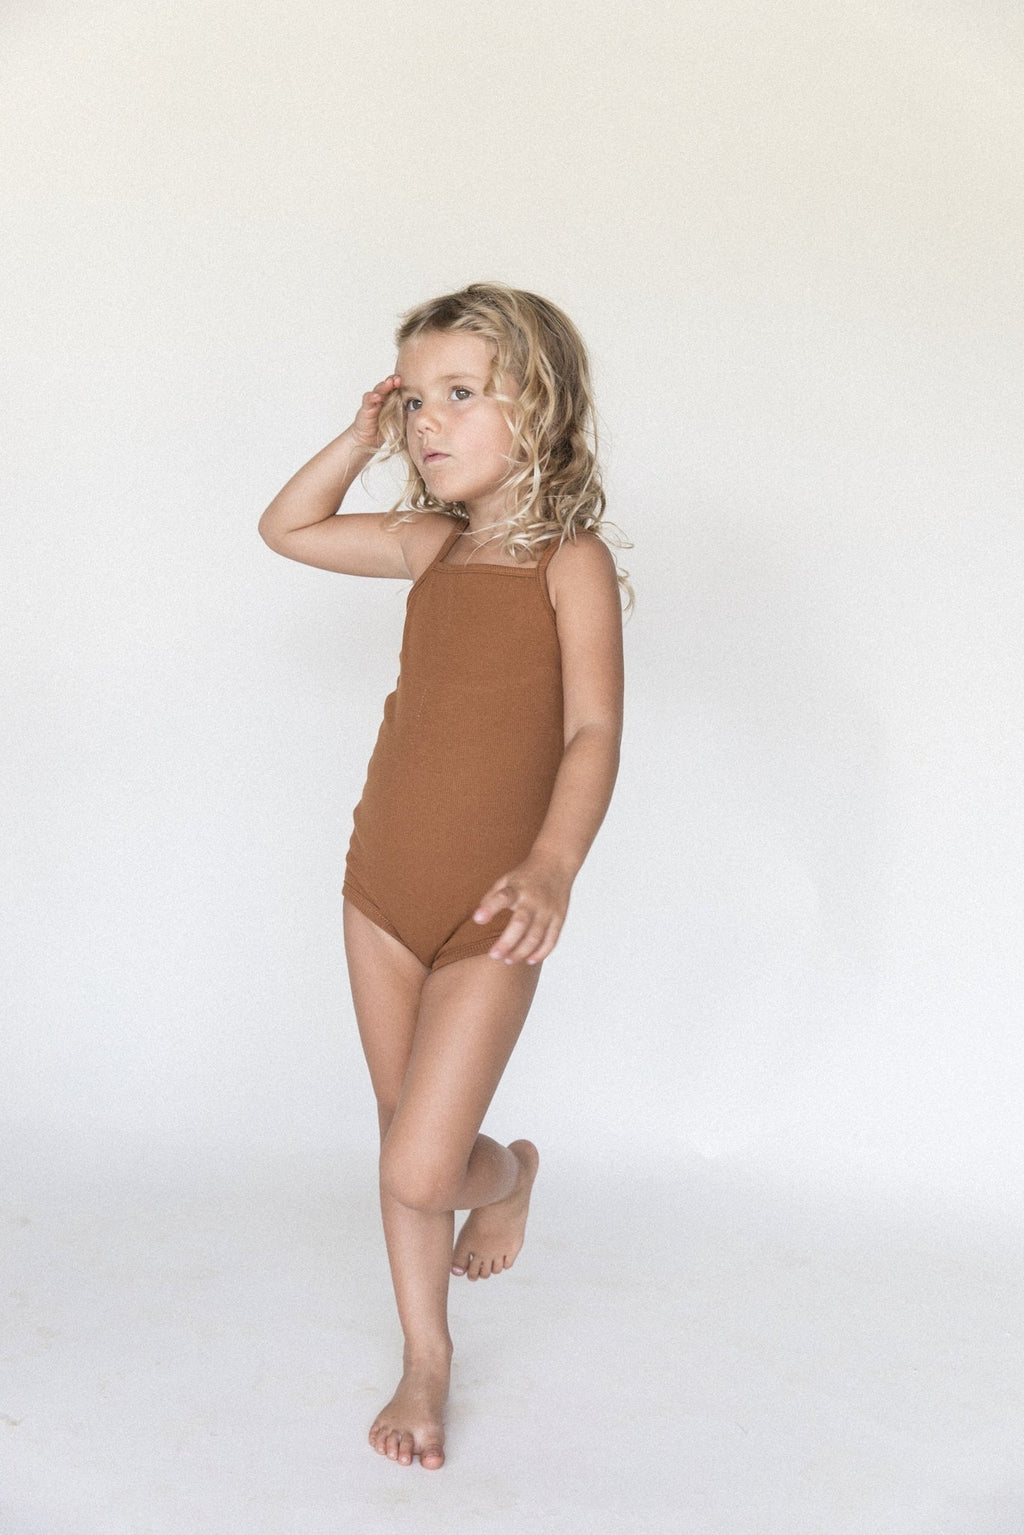 Kauai Clay | Kids Essential Body Suit | Raised By Water